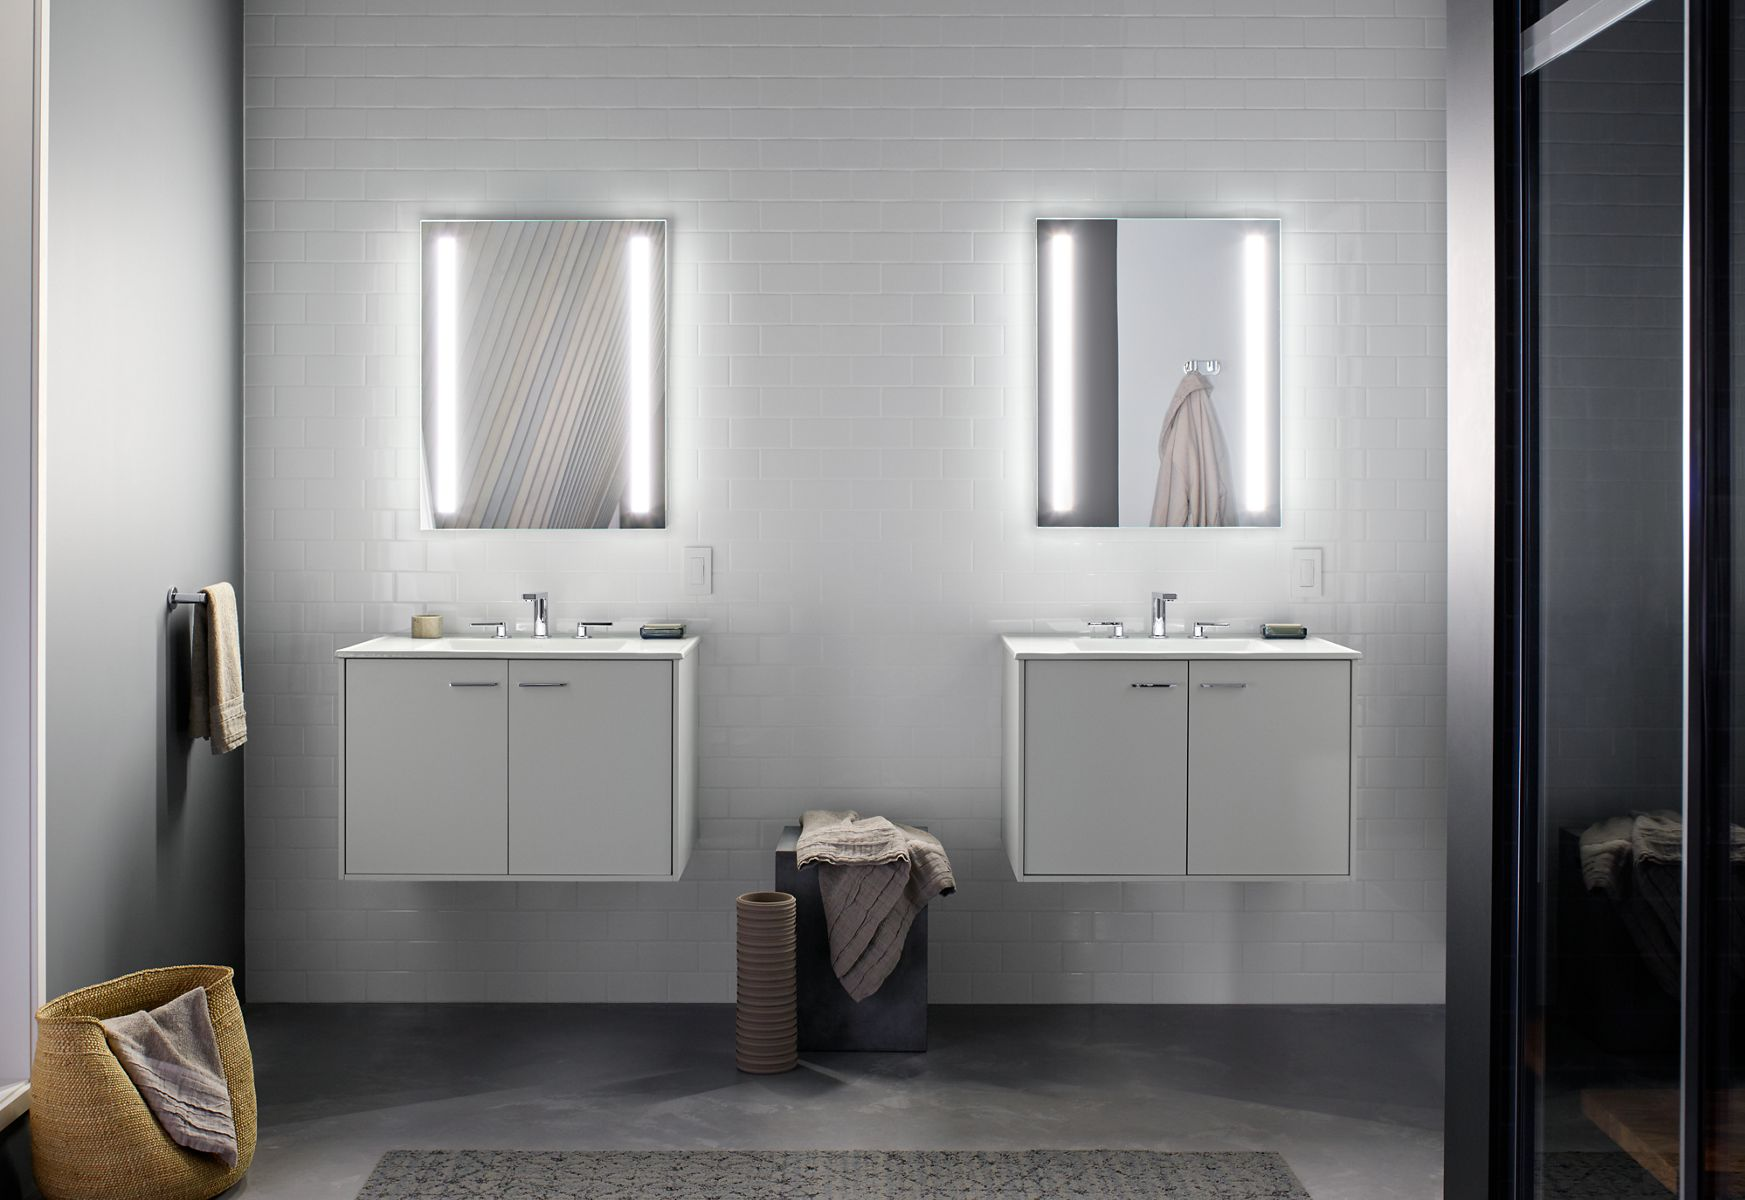 bathroom medicine cabinets other furniture storage solution kohler rh us kohler com lighted medicine cabinets with mirrors lowes lighted bathroom medicine cabinets mirrors